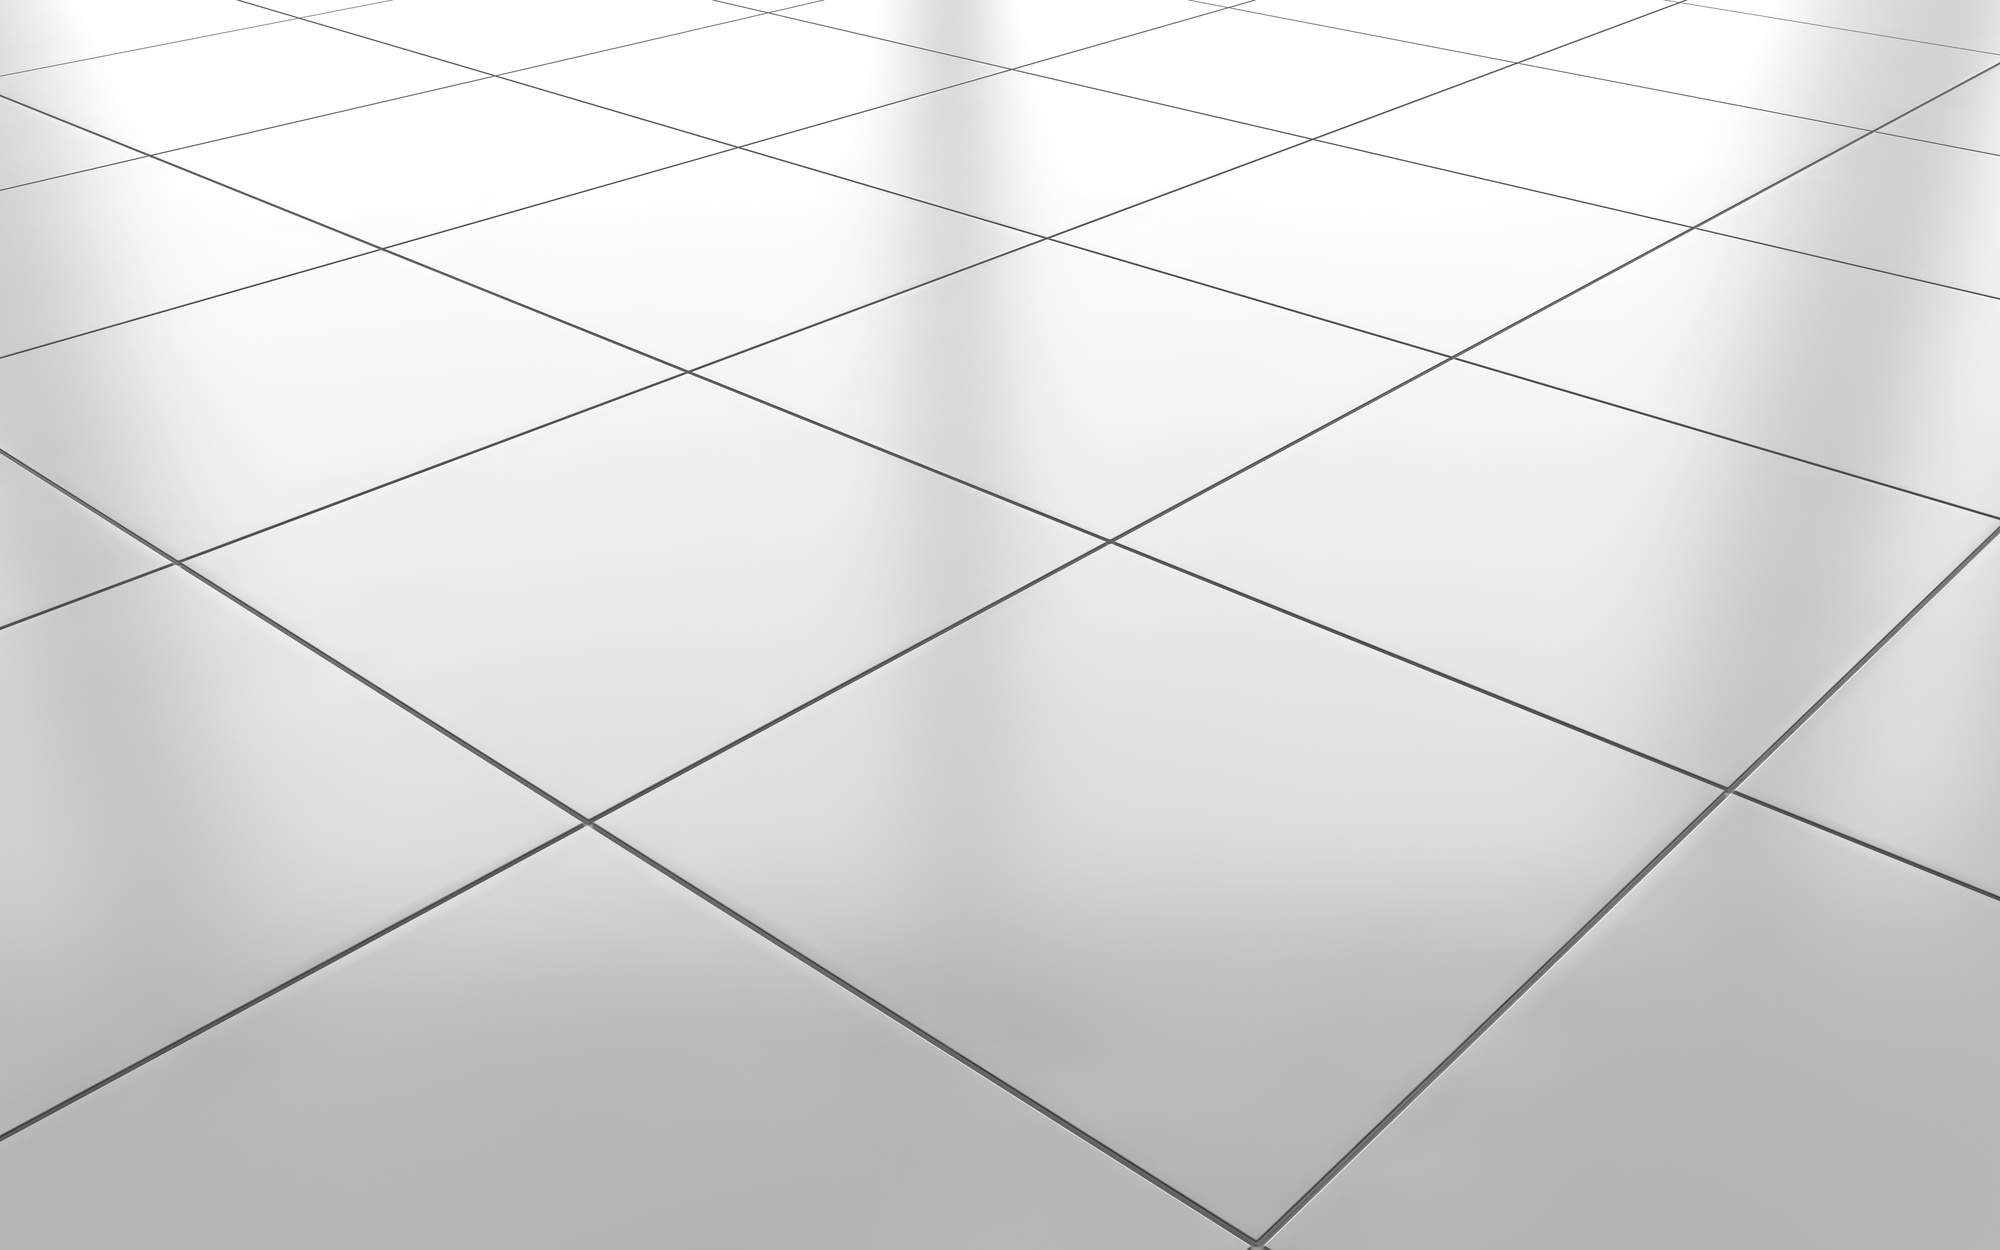 White Glossy Ceramic Tile Floor Background My Affordable